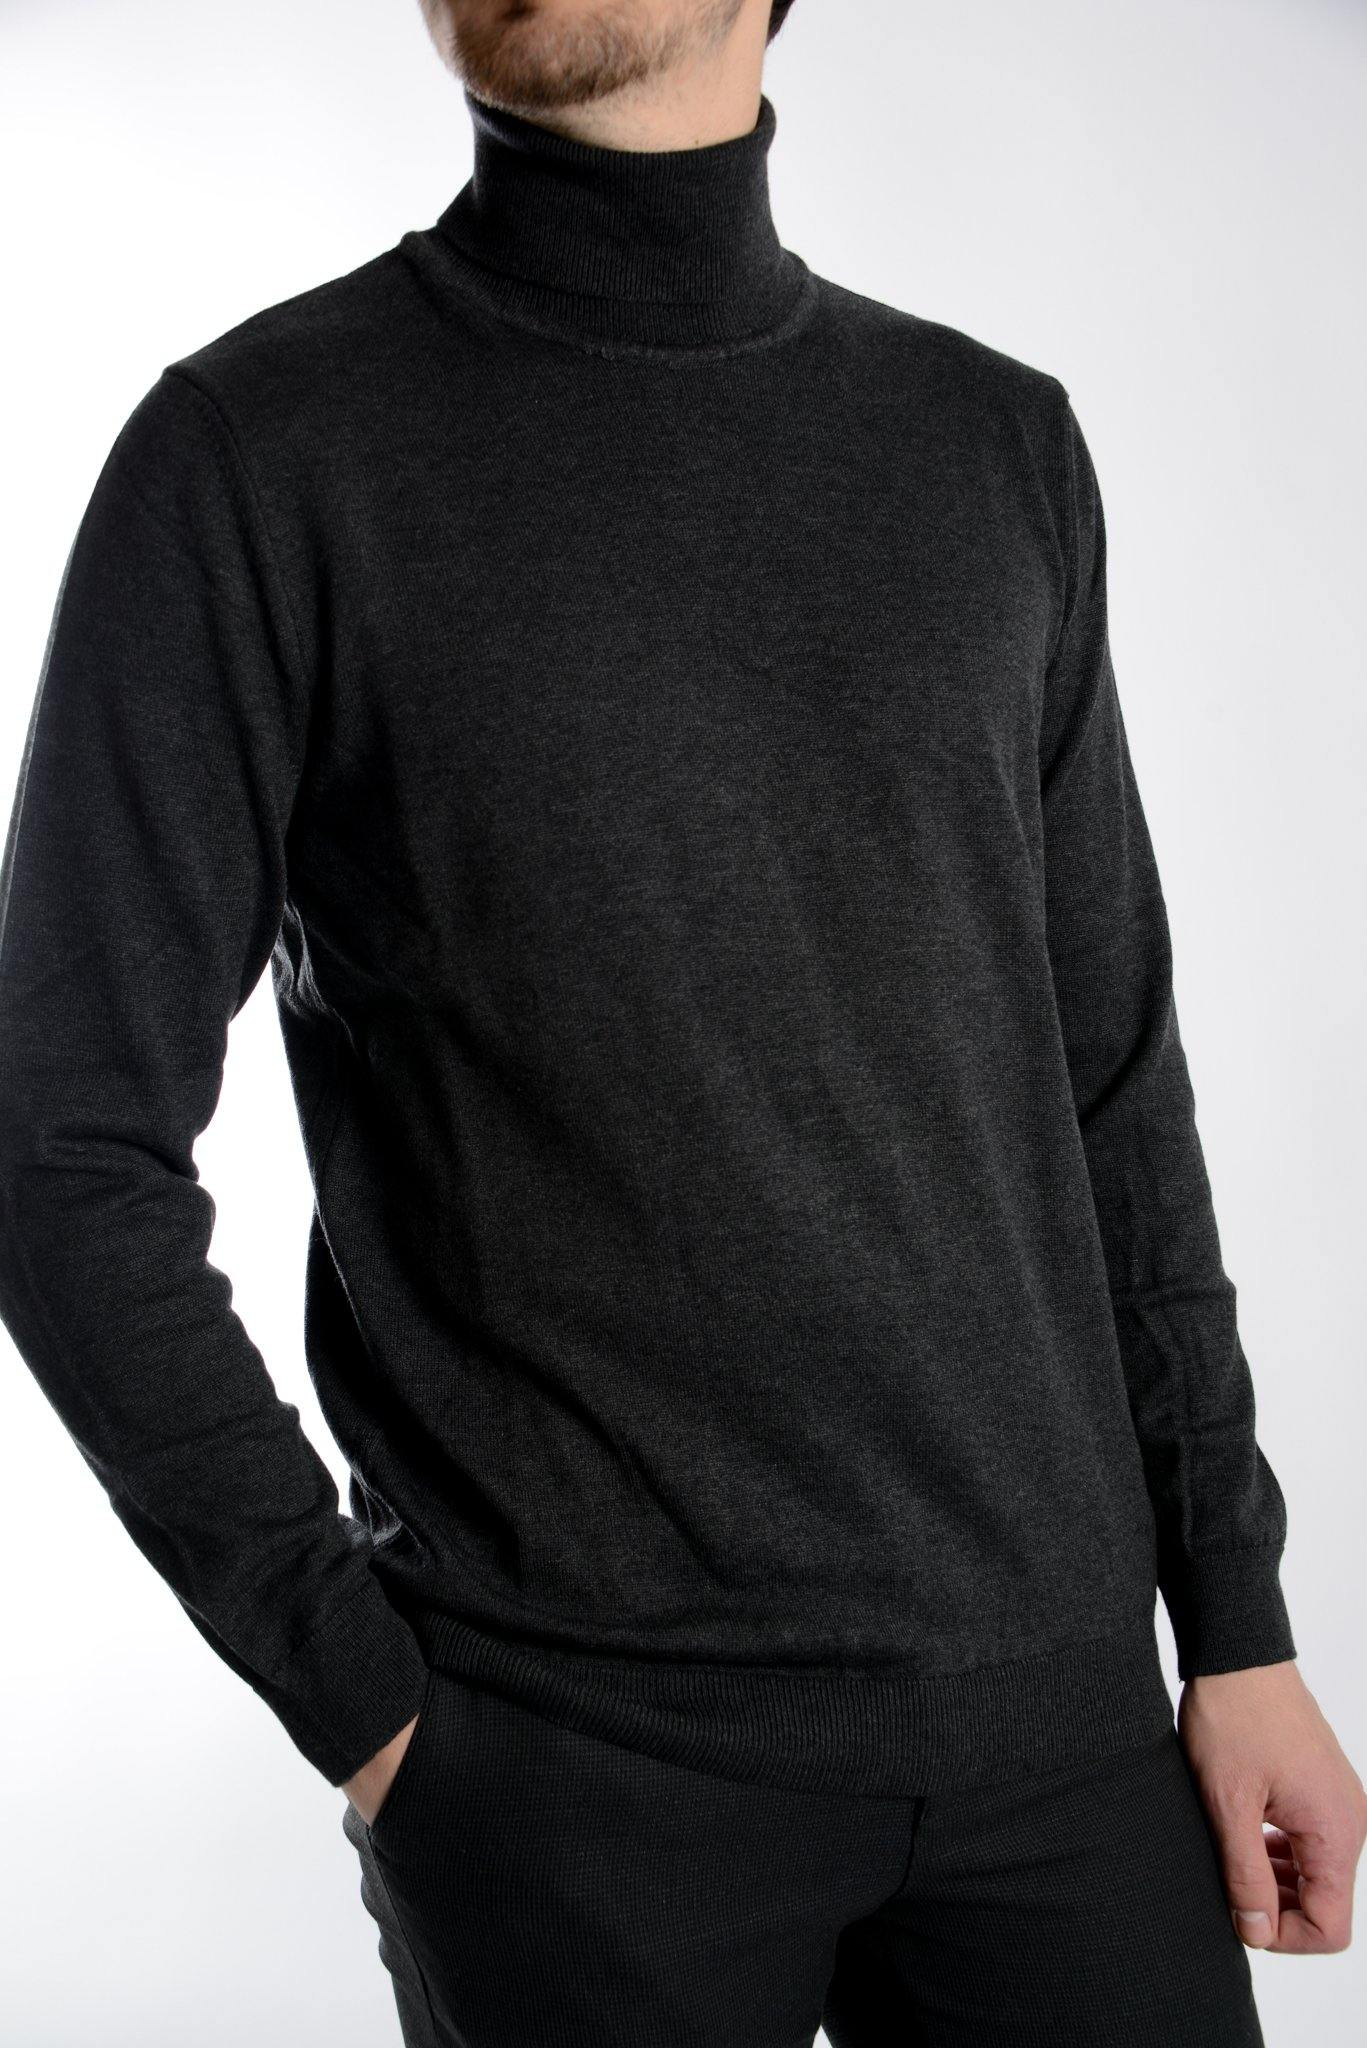 Cambridge Relaxed Fit Turtleneck Euro Sweater - Haight & Ashbury